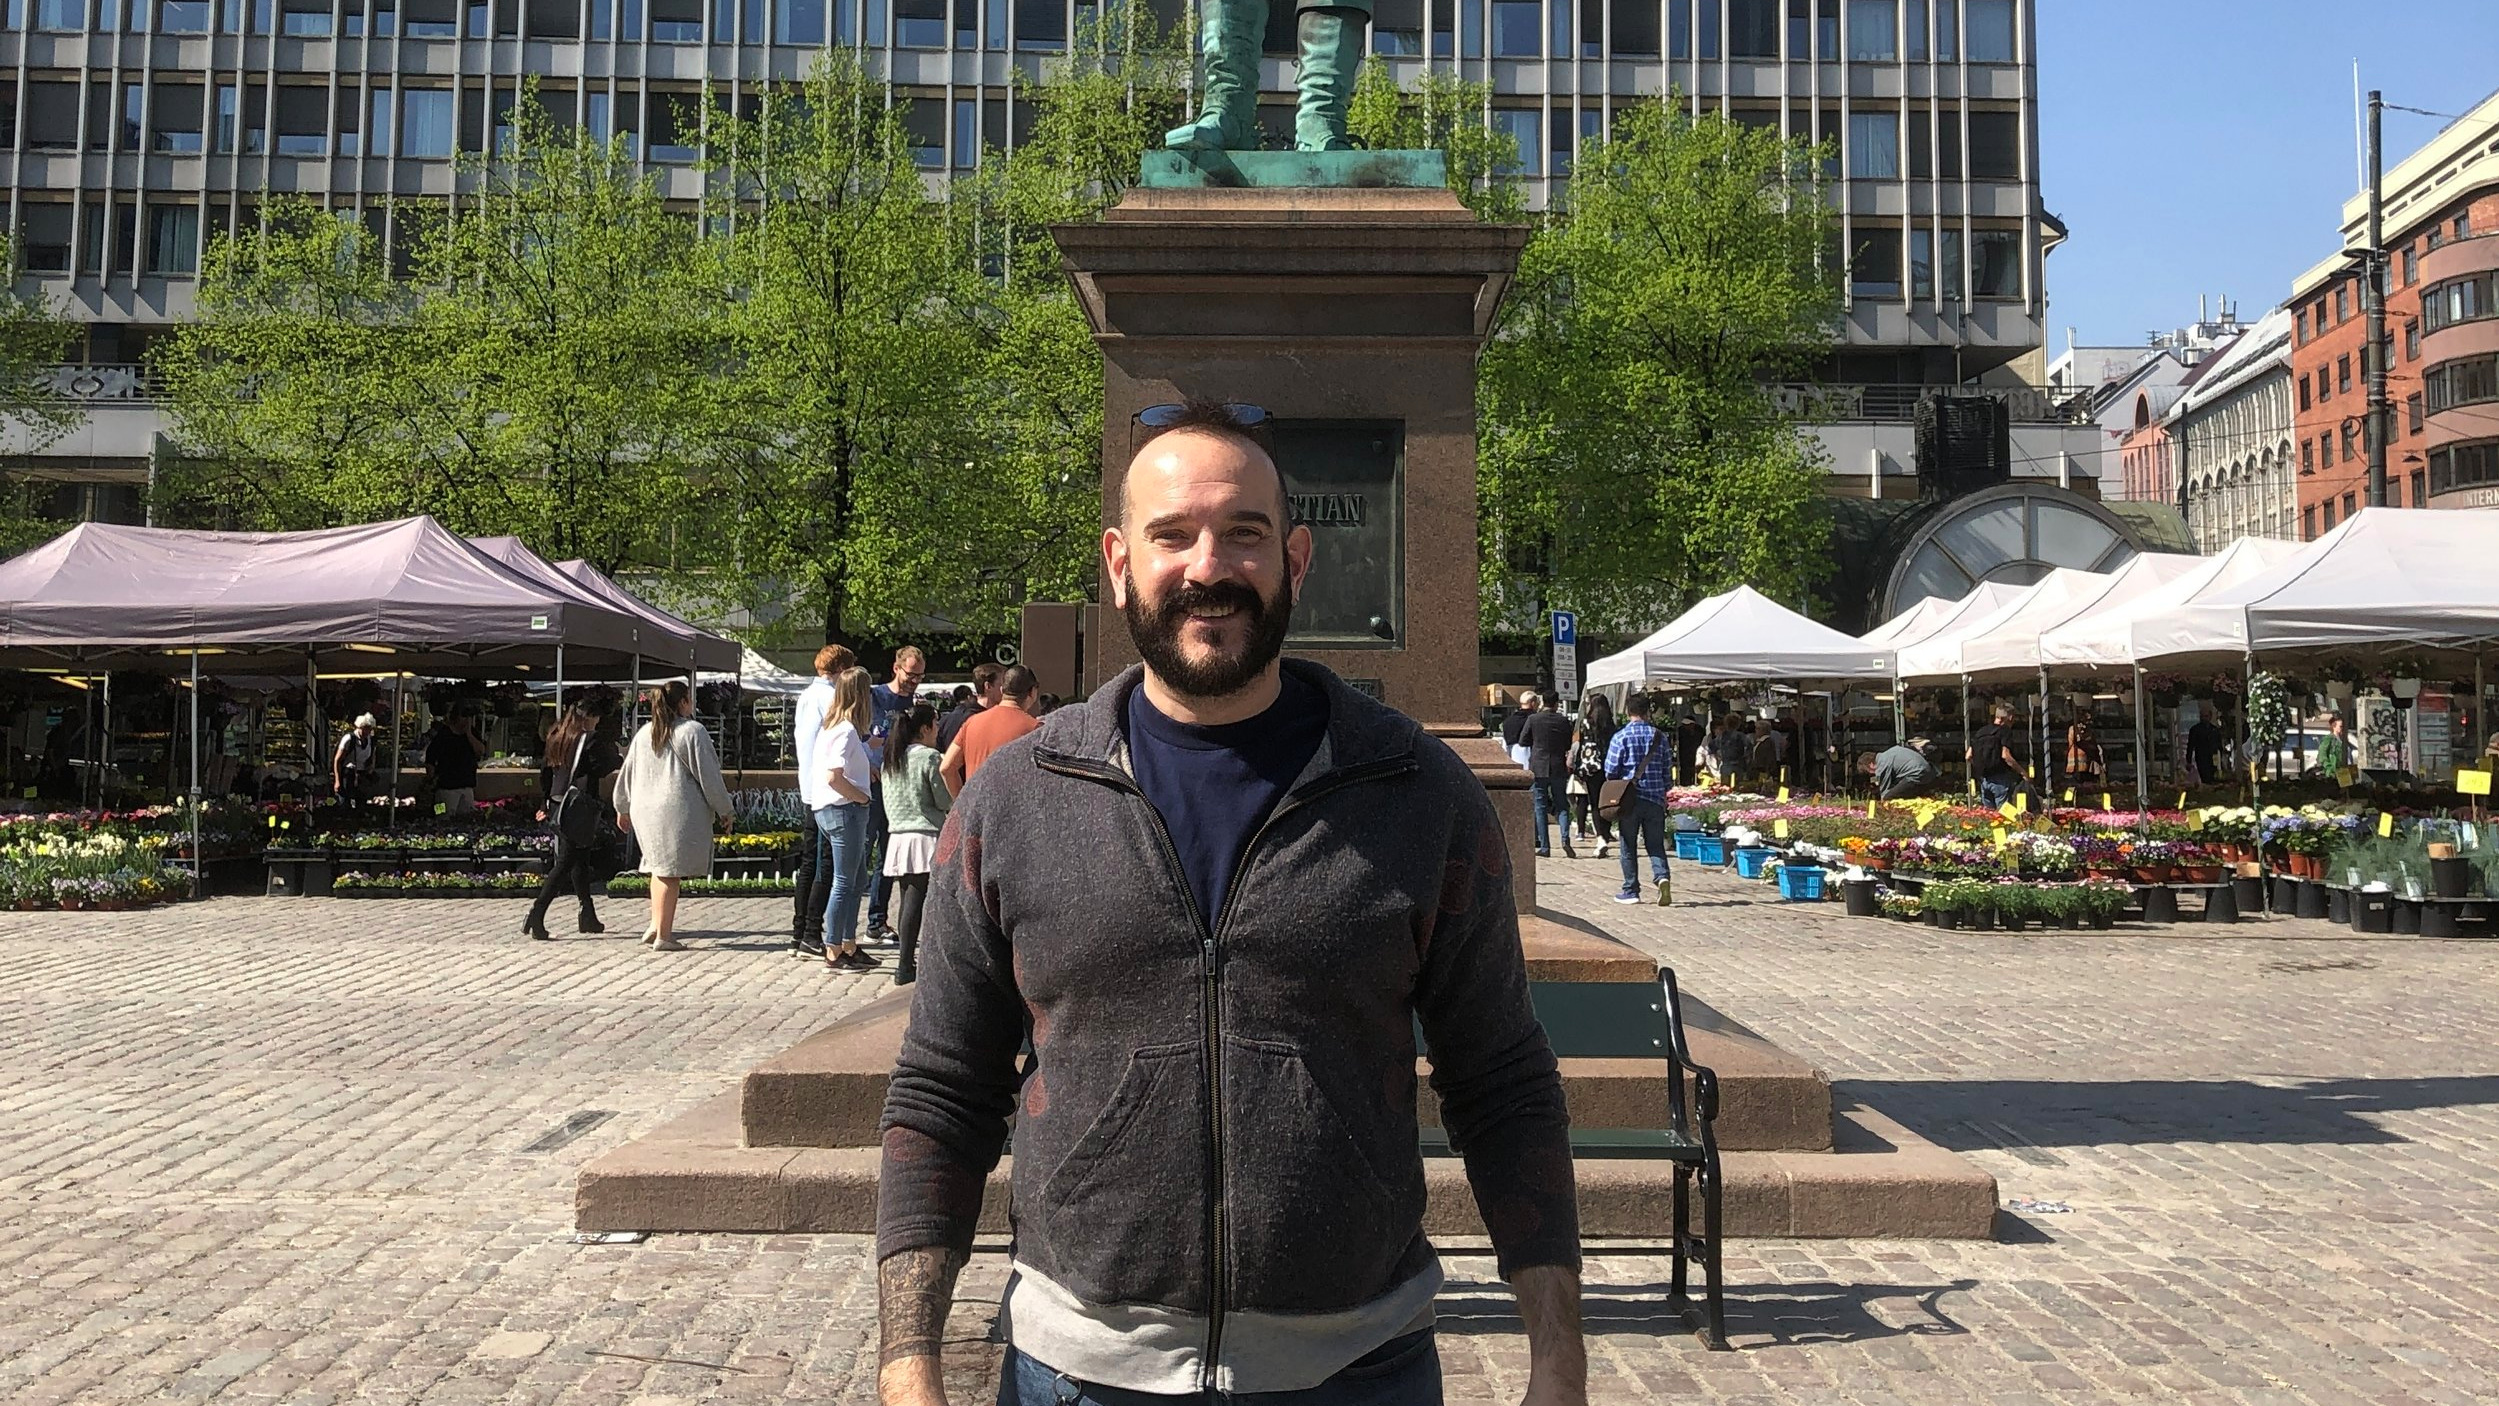 Mathew posing in front of a statue of Christian IV, at Oslo City Center.